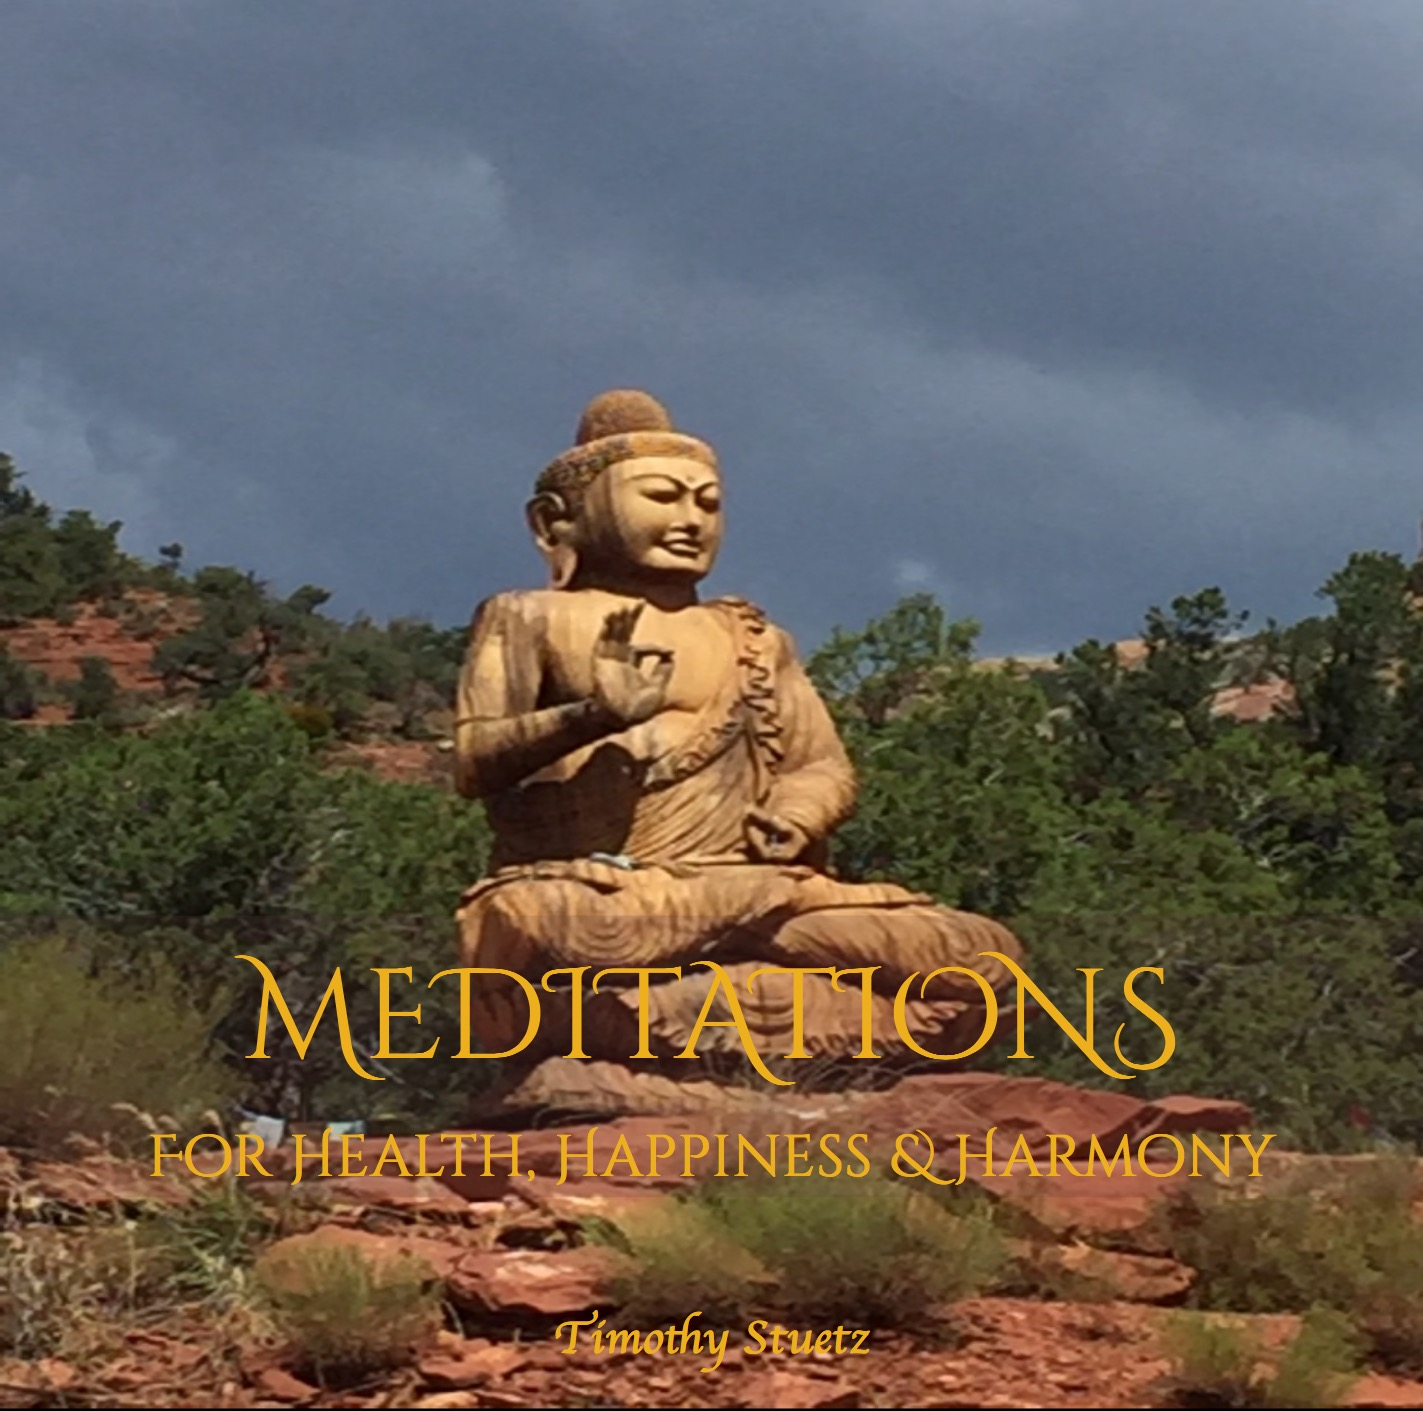 Meditations for Health, Happiness & Harmony